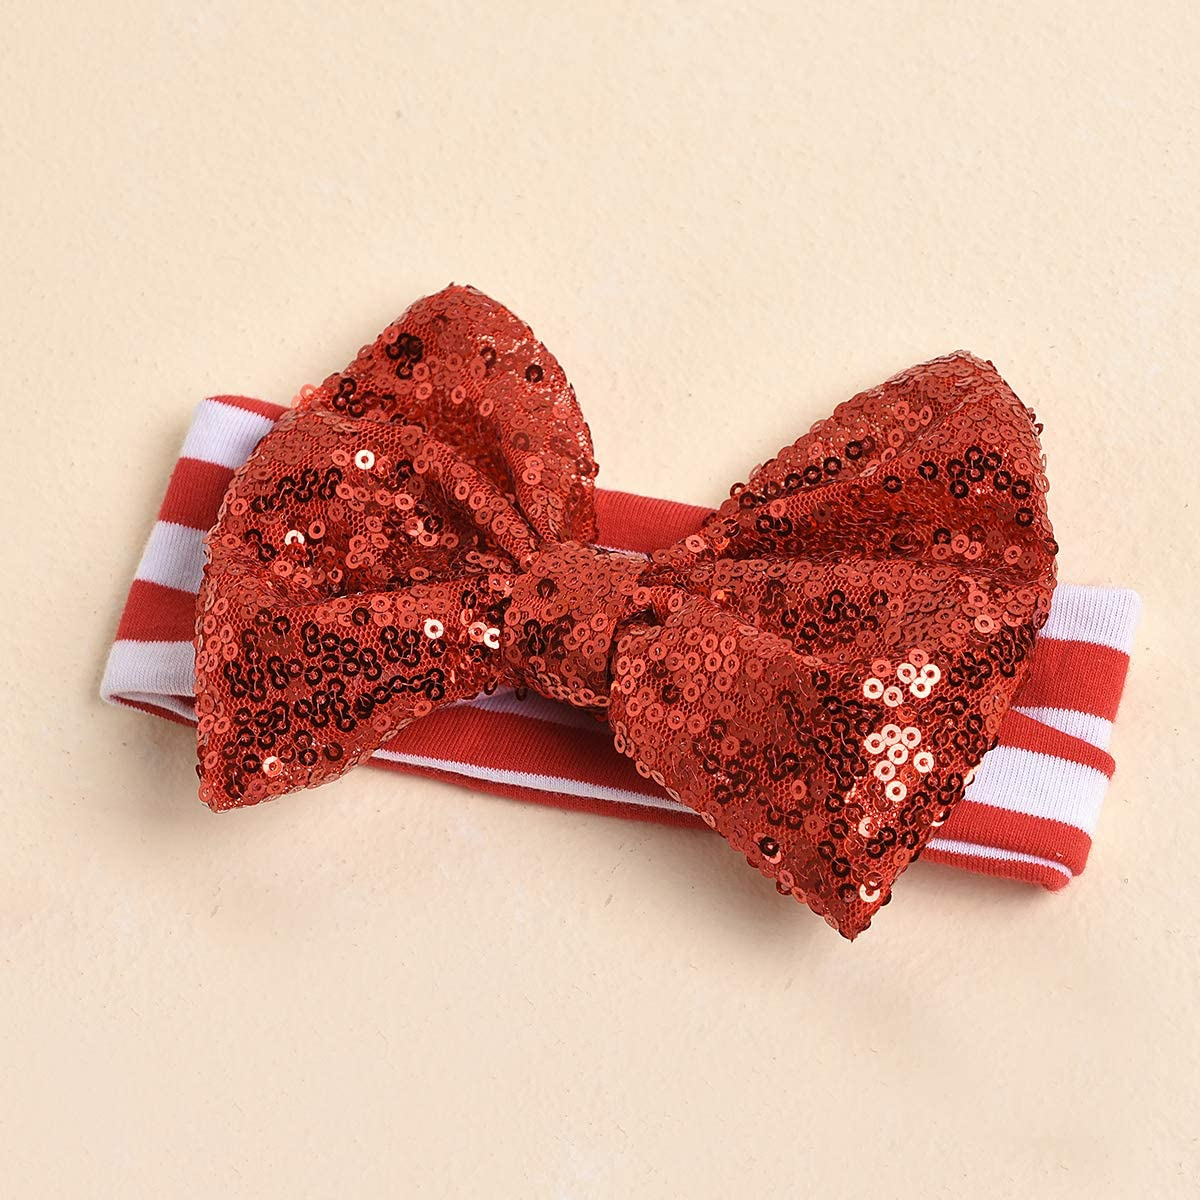 Sequin Bow Headband Toddler Clothing Red Skirt 3 PCs Christmas Baby Girls Outfits Long Sleeve Round Neck Letter Print First Christmas White Romper